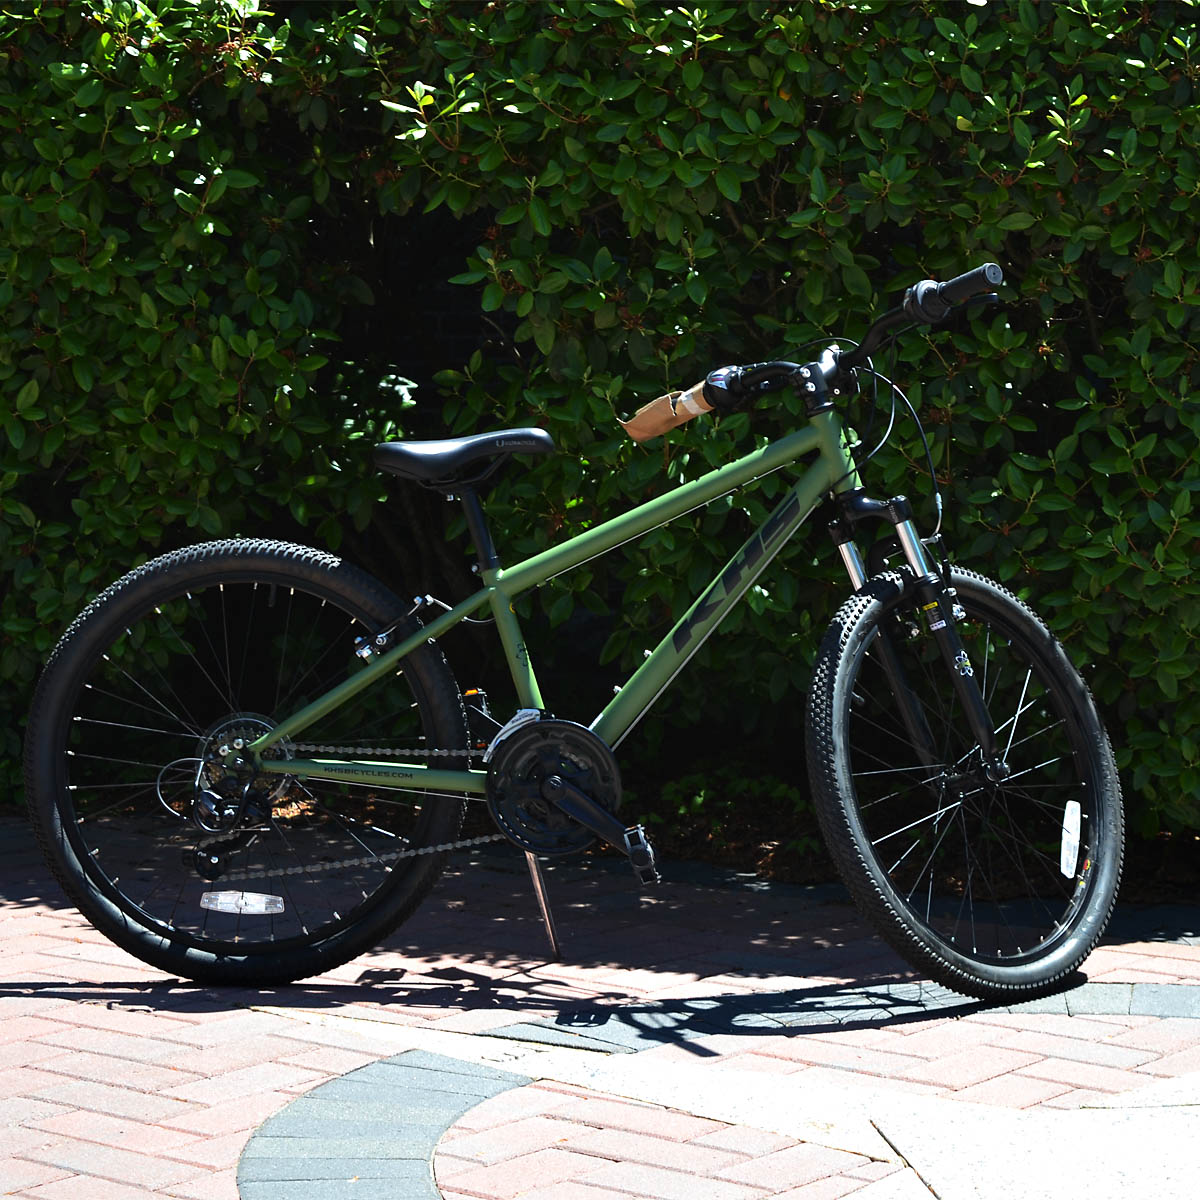 "Youth Size mountain Bike - This KHS T-Rex youth size mountain bike from Island Bike Rental has everything a young rider needs to zoom across town or explore the carriage roads. Featuring a 24"" front suspension and high quality Shimano components, this stylish bike also includes a Bell helmet."